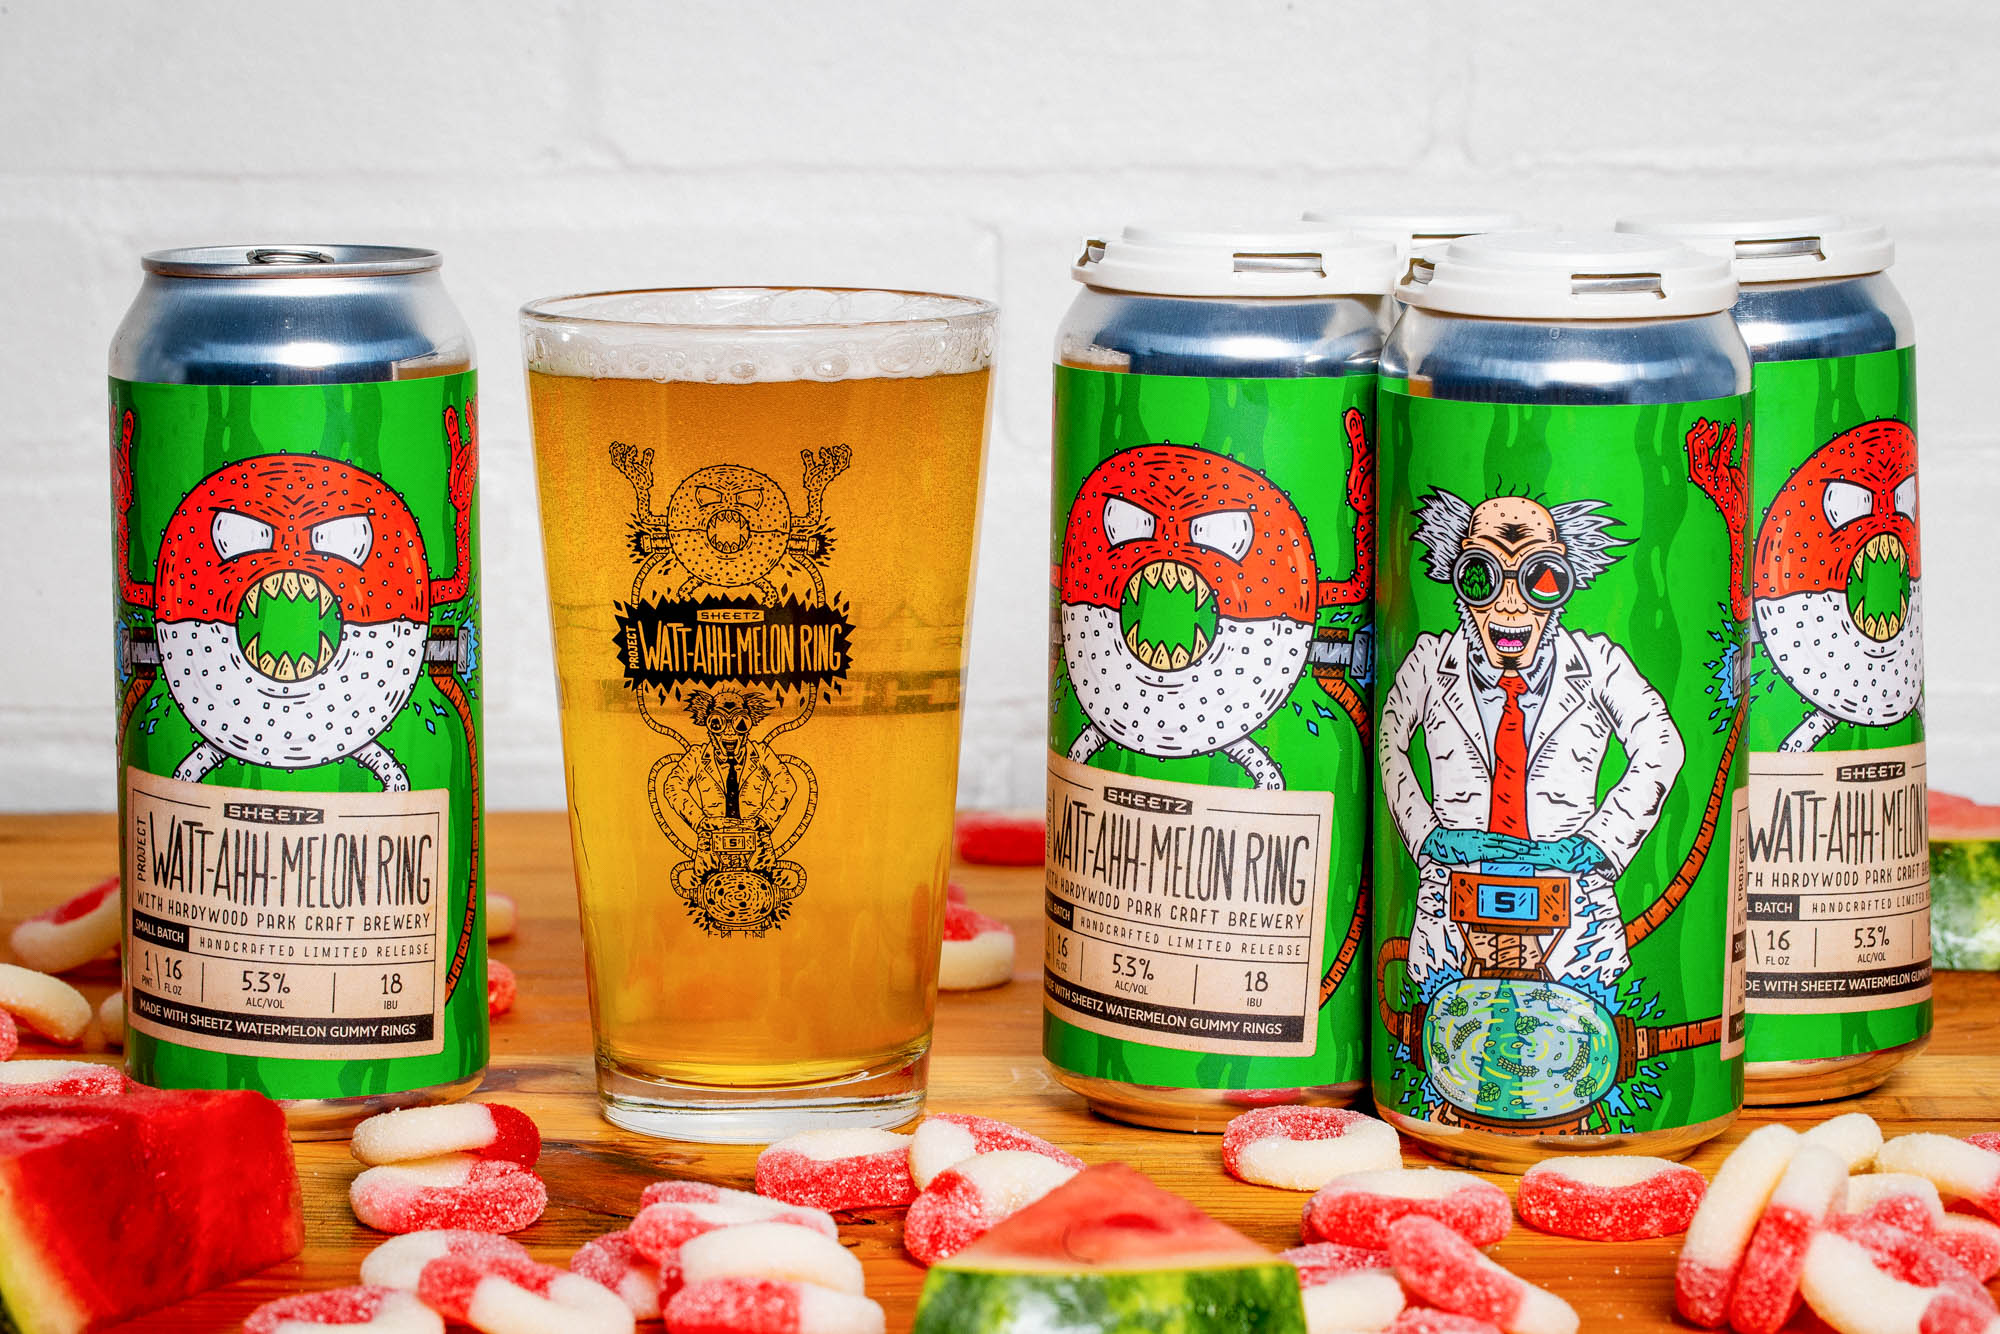 Cans and glass of Sheetz Watt-ahh-melon ring surrounded by watermelon ring candies